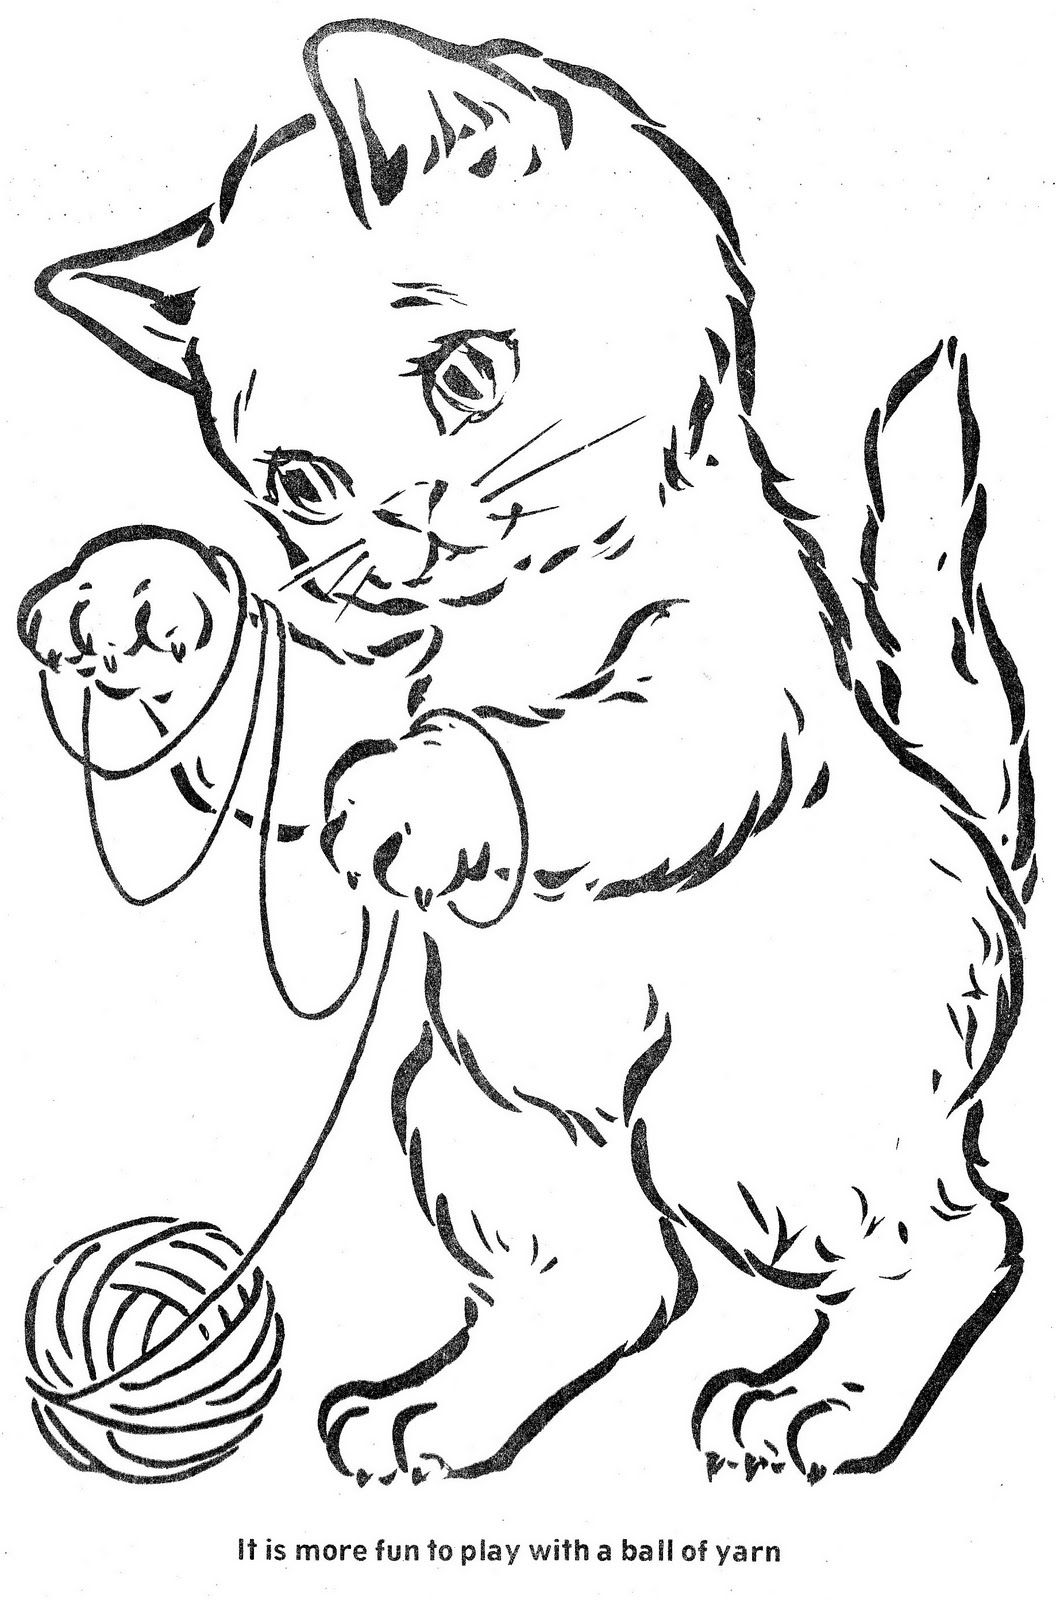 coloring book cat coloring pages how to draw a cat and dog easy zaman book cat coloring